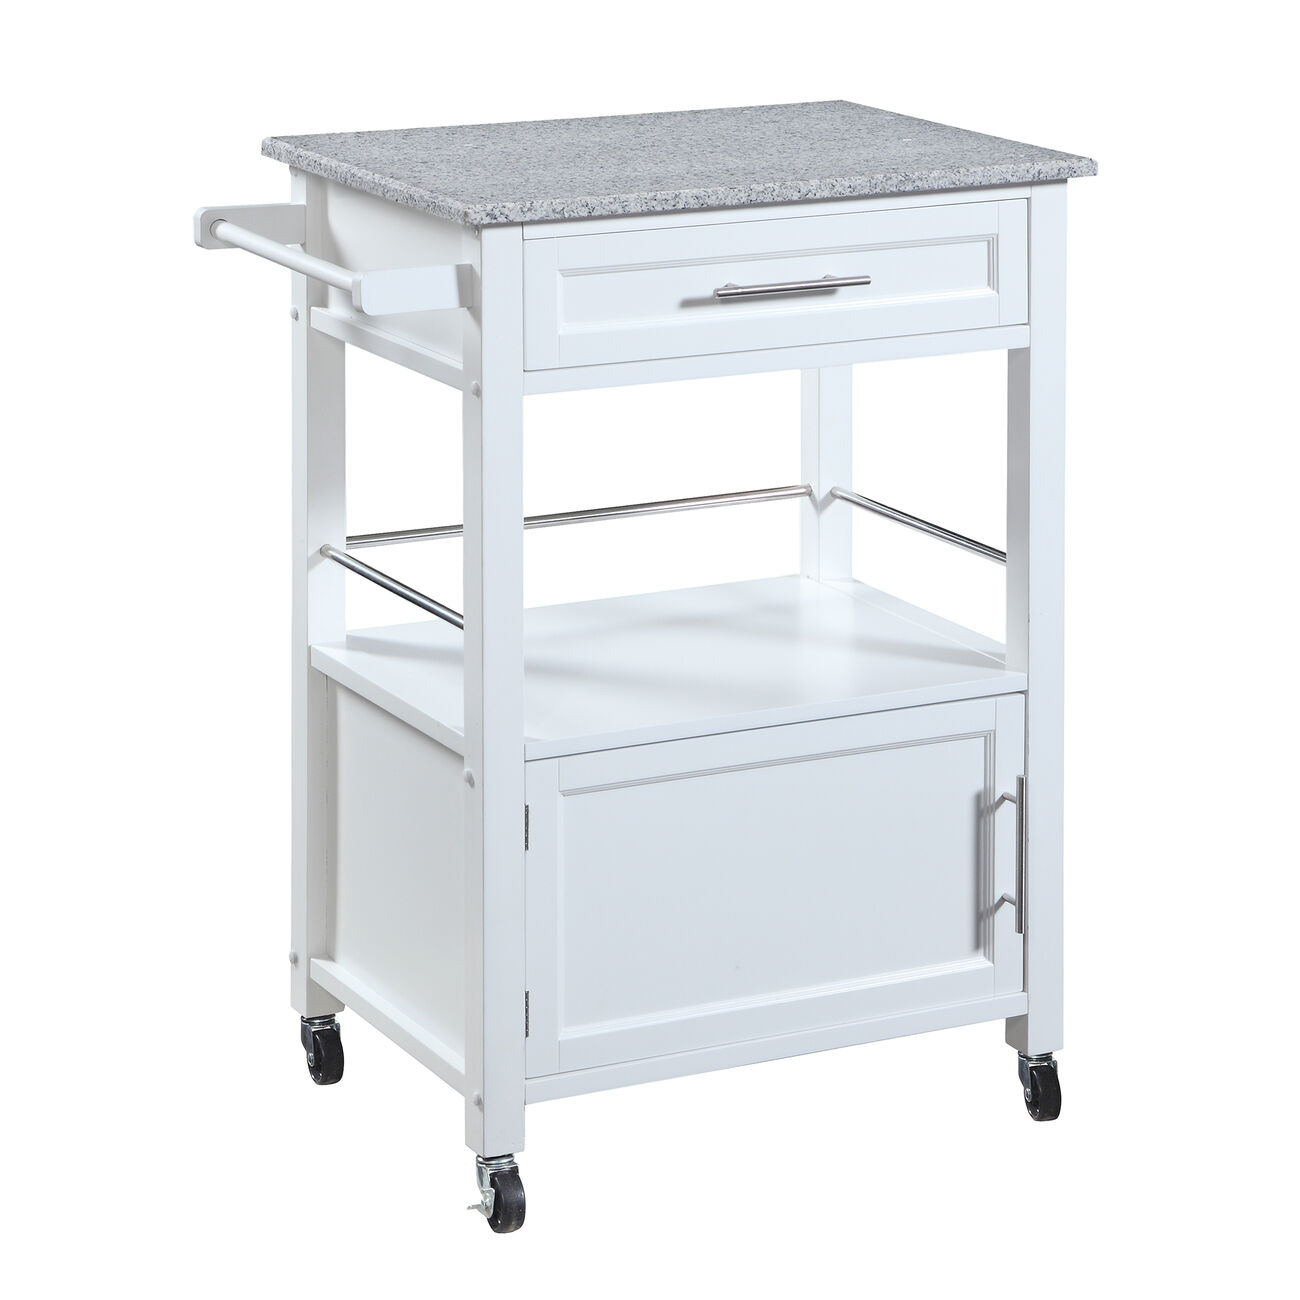 Granite Inlaid Spacious Wooden Kitchen Cart, White and Gray